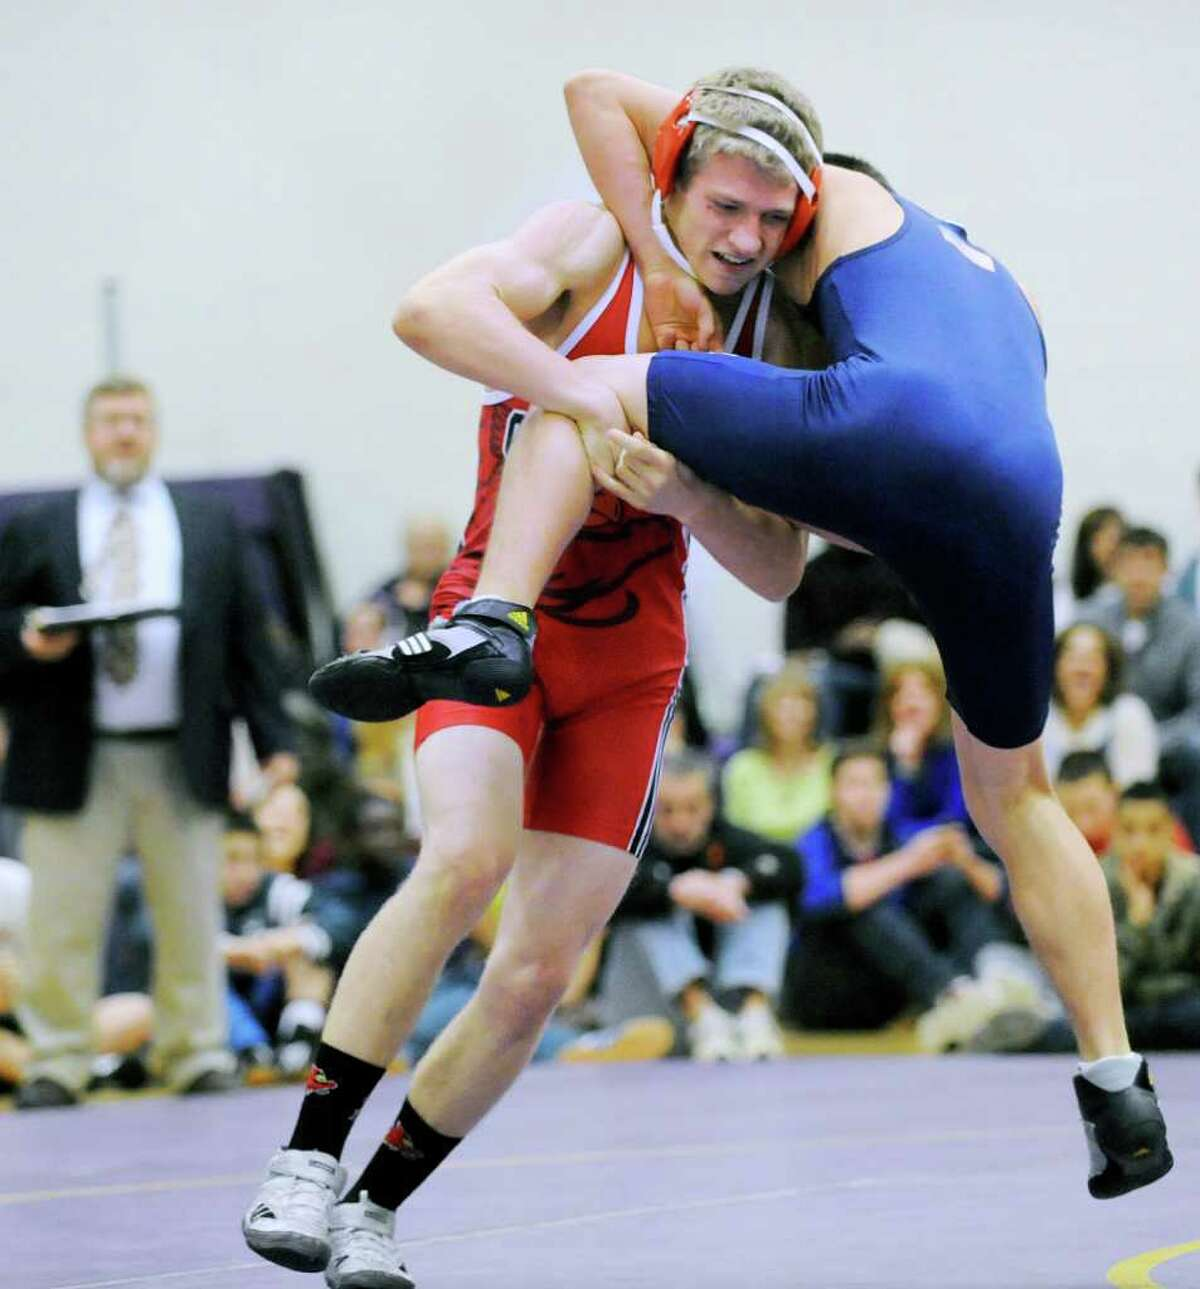 At left, Mike Gestal of Greenwich High School, mixes it up with Andrew Sakamoto of Wilton High School in the 138 pound weight class in high school wrestling match between Greenwich High School and Wilton High School at Westhill High School in Stamford, Thursday night, Dec. 22, 2011.